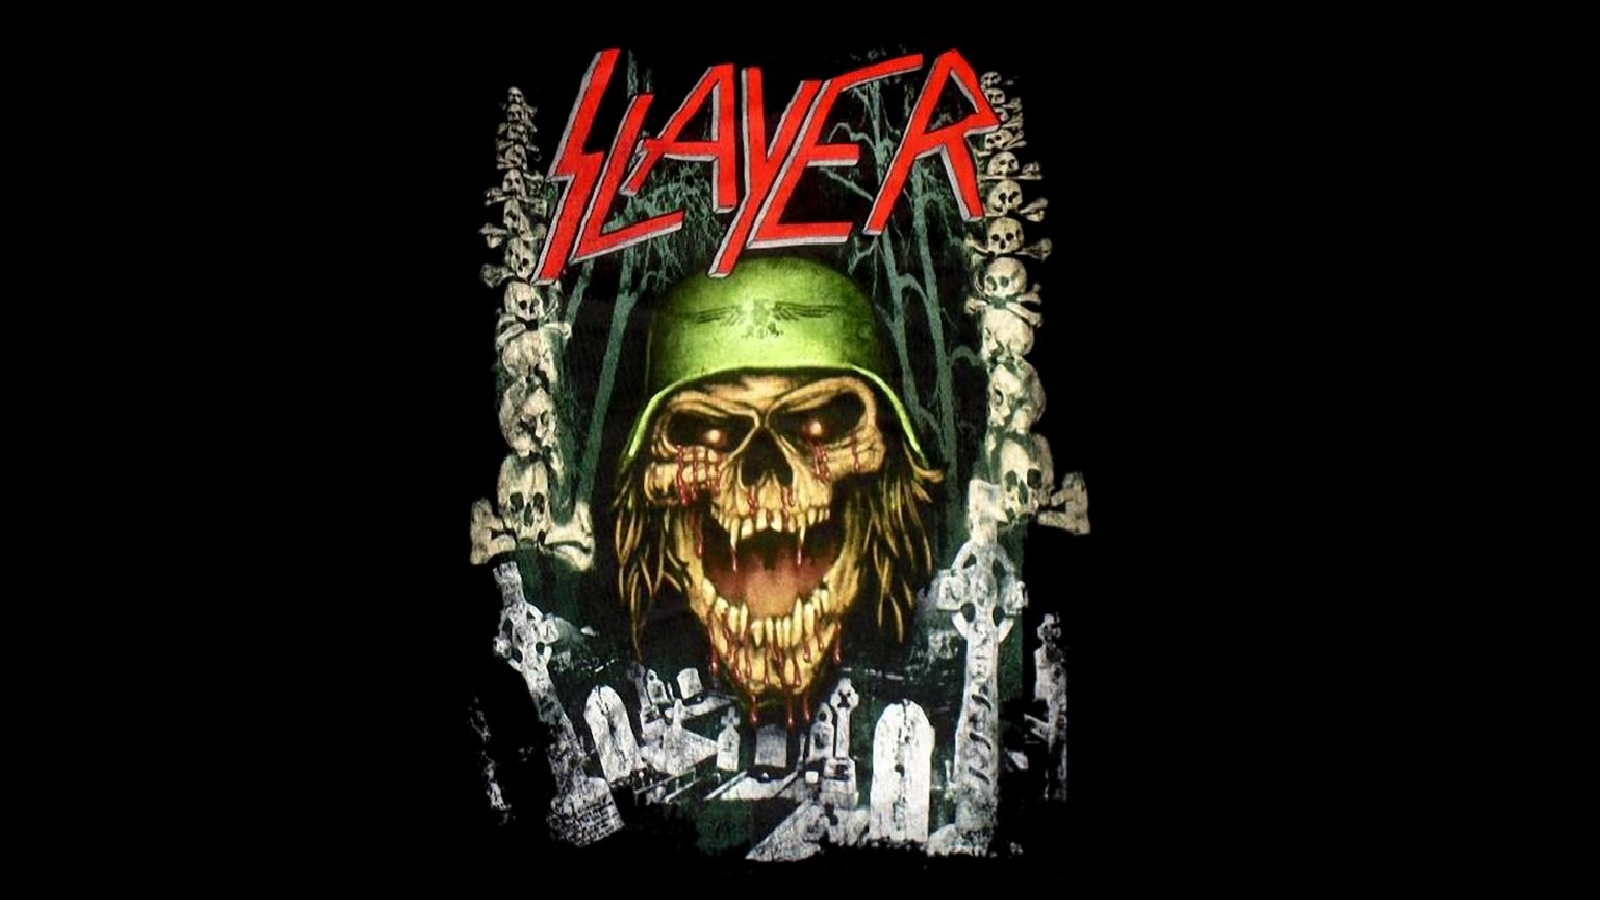 Slayer Wallpaper and Background | 1600x900 | ID:505983